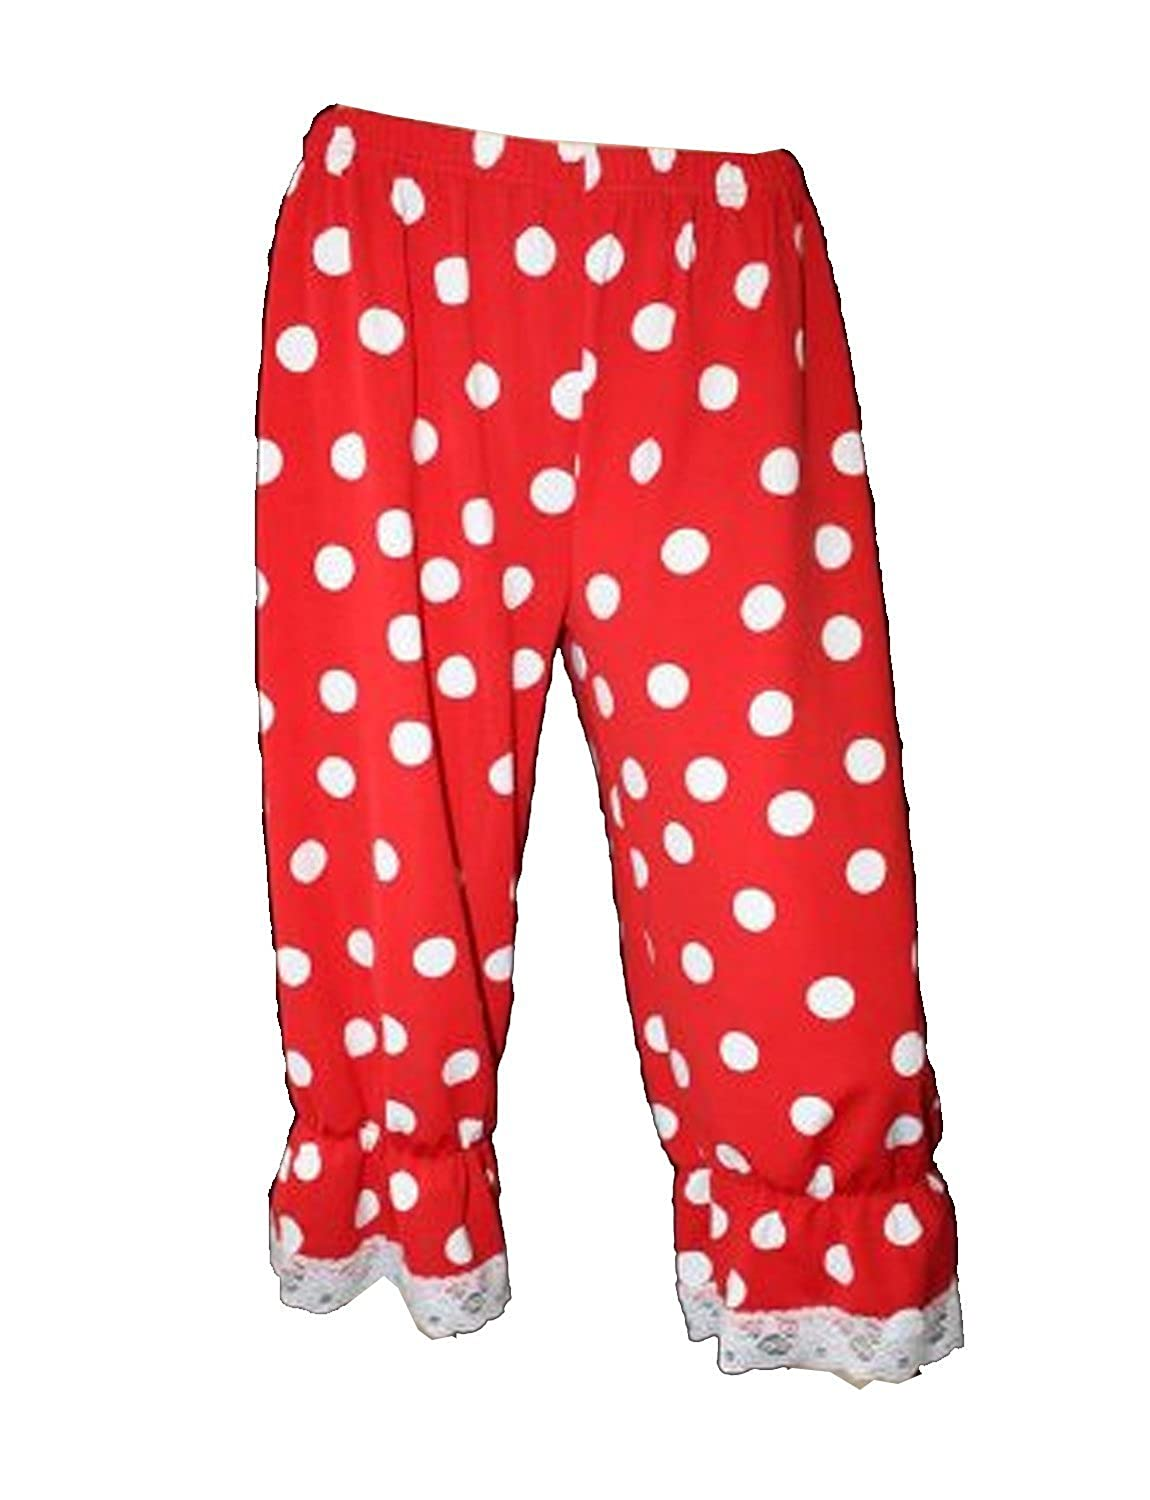 Minnie Red & White Polka Dot Long Bloomers